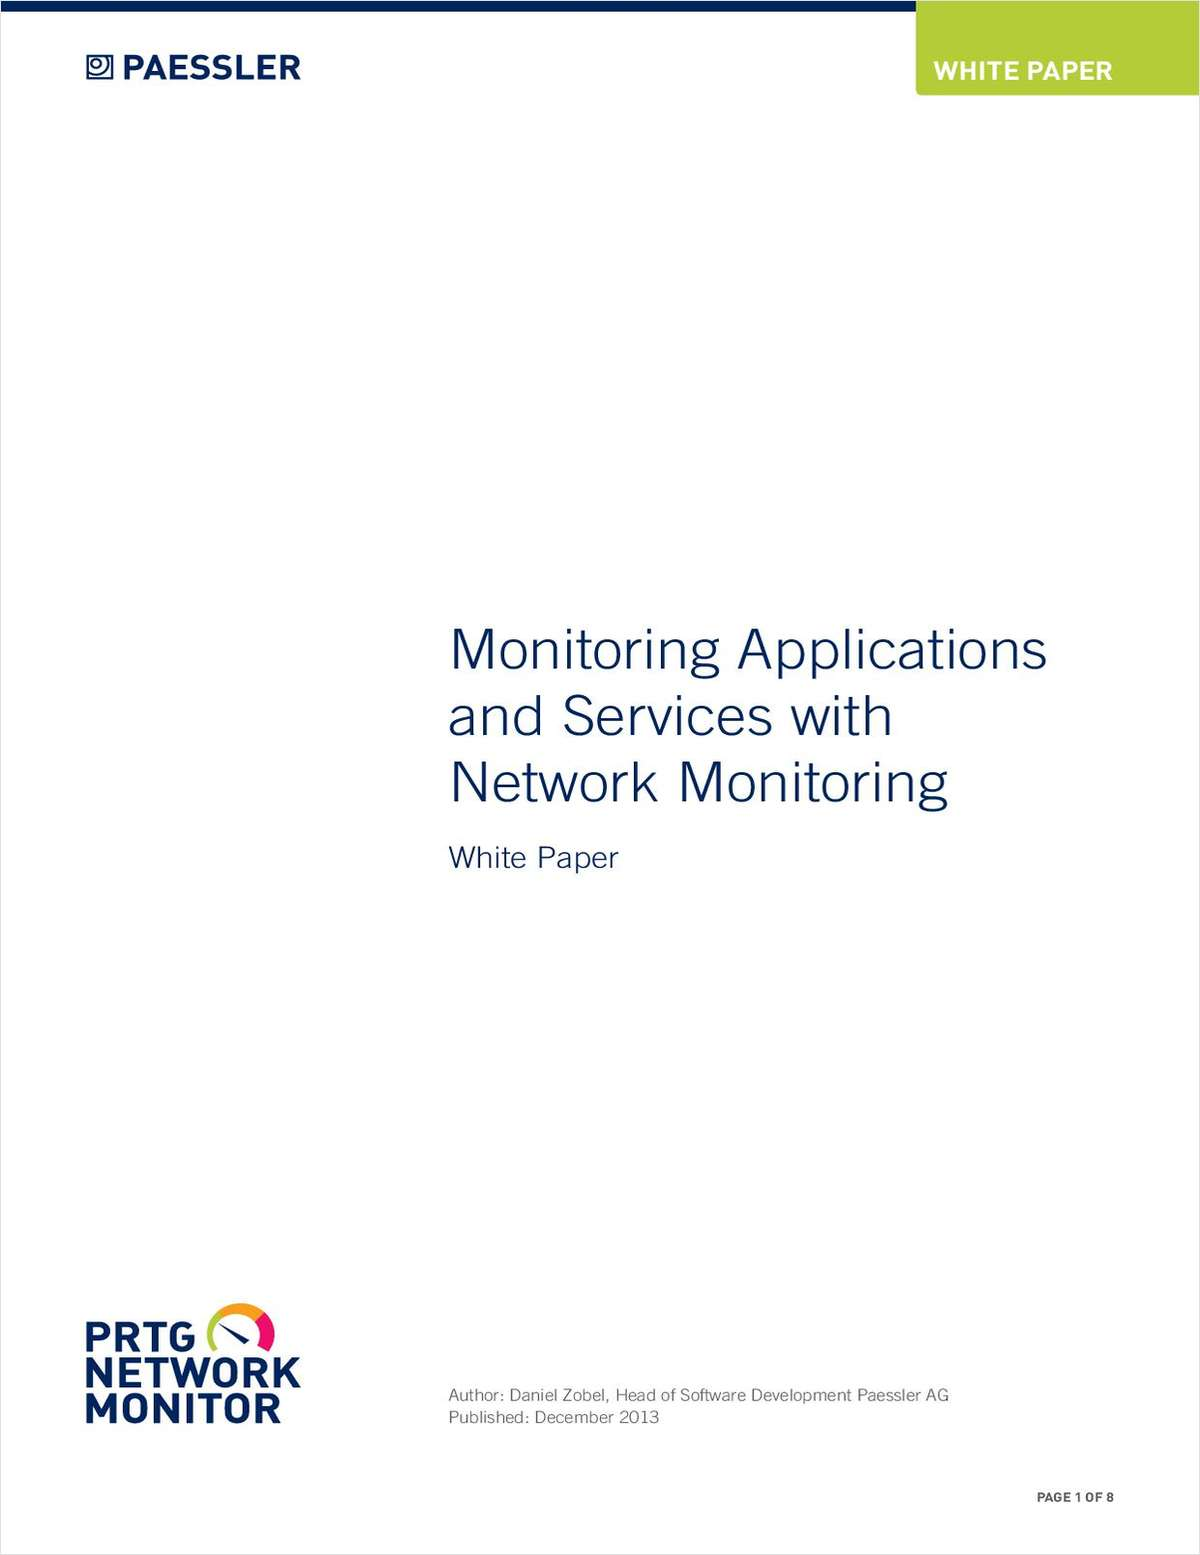 Monitoring Applications and Services with Network Monitoring